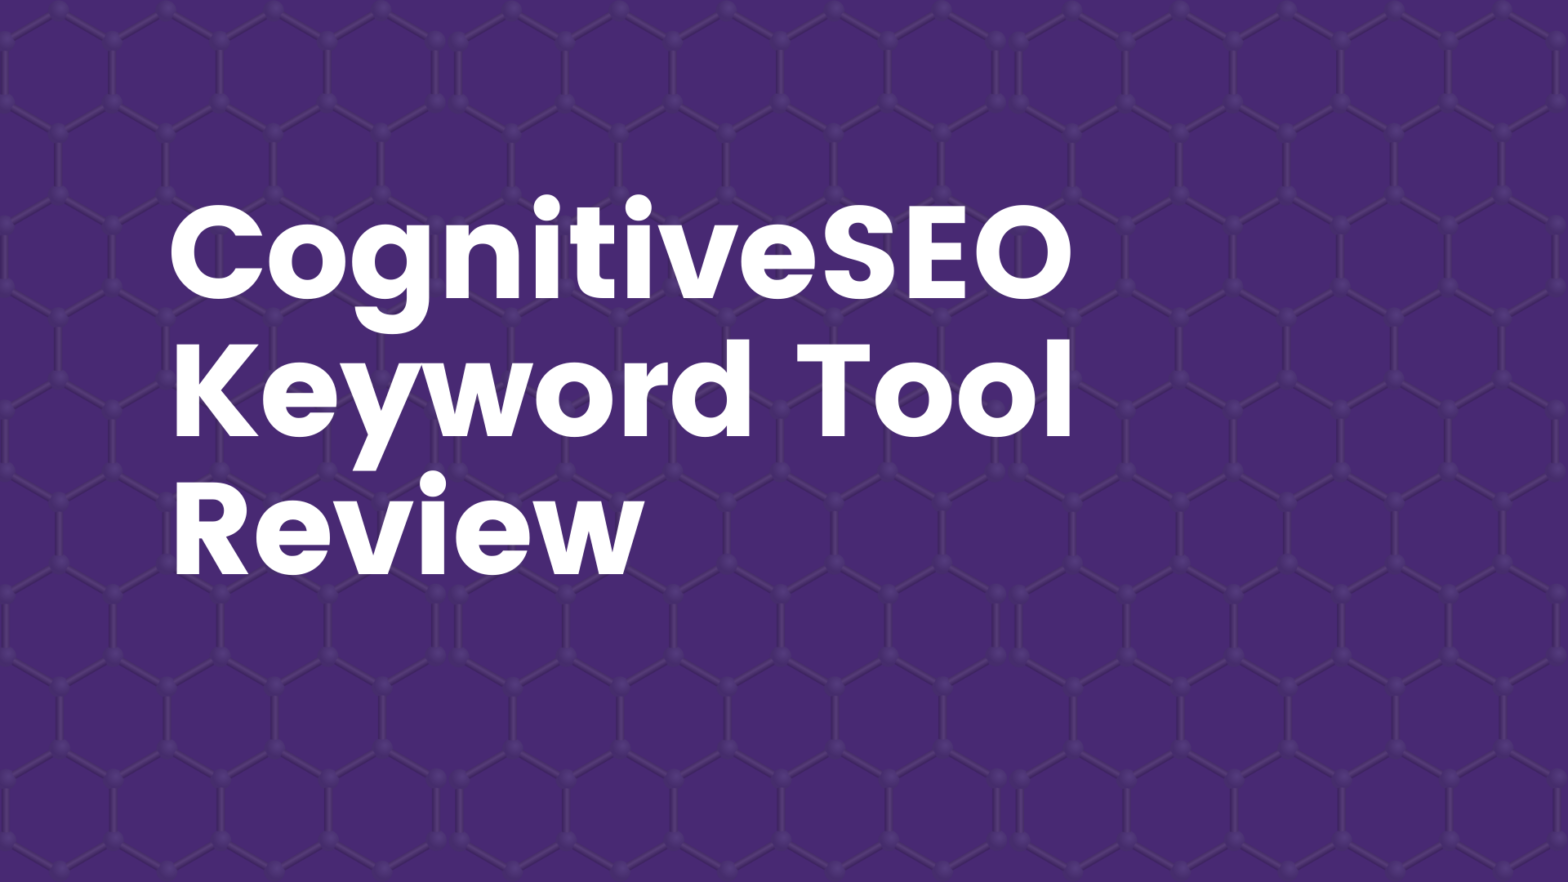 CognitiveSEO Keyword Tool Review